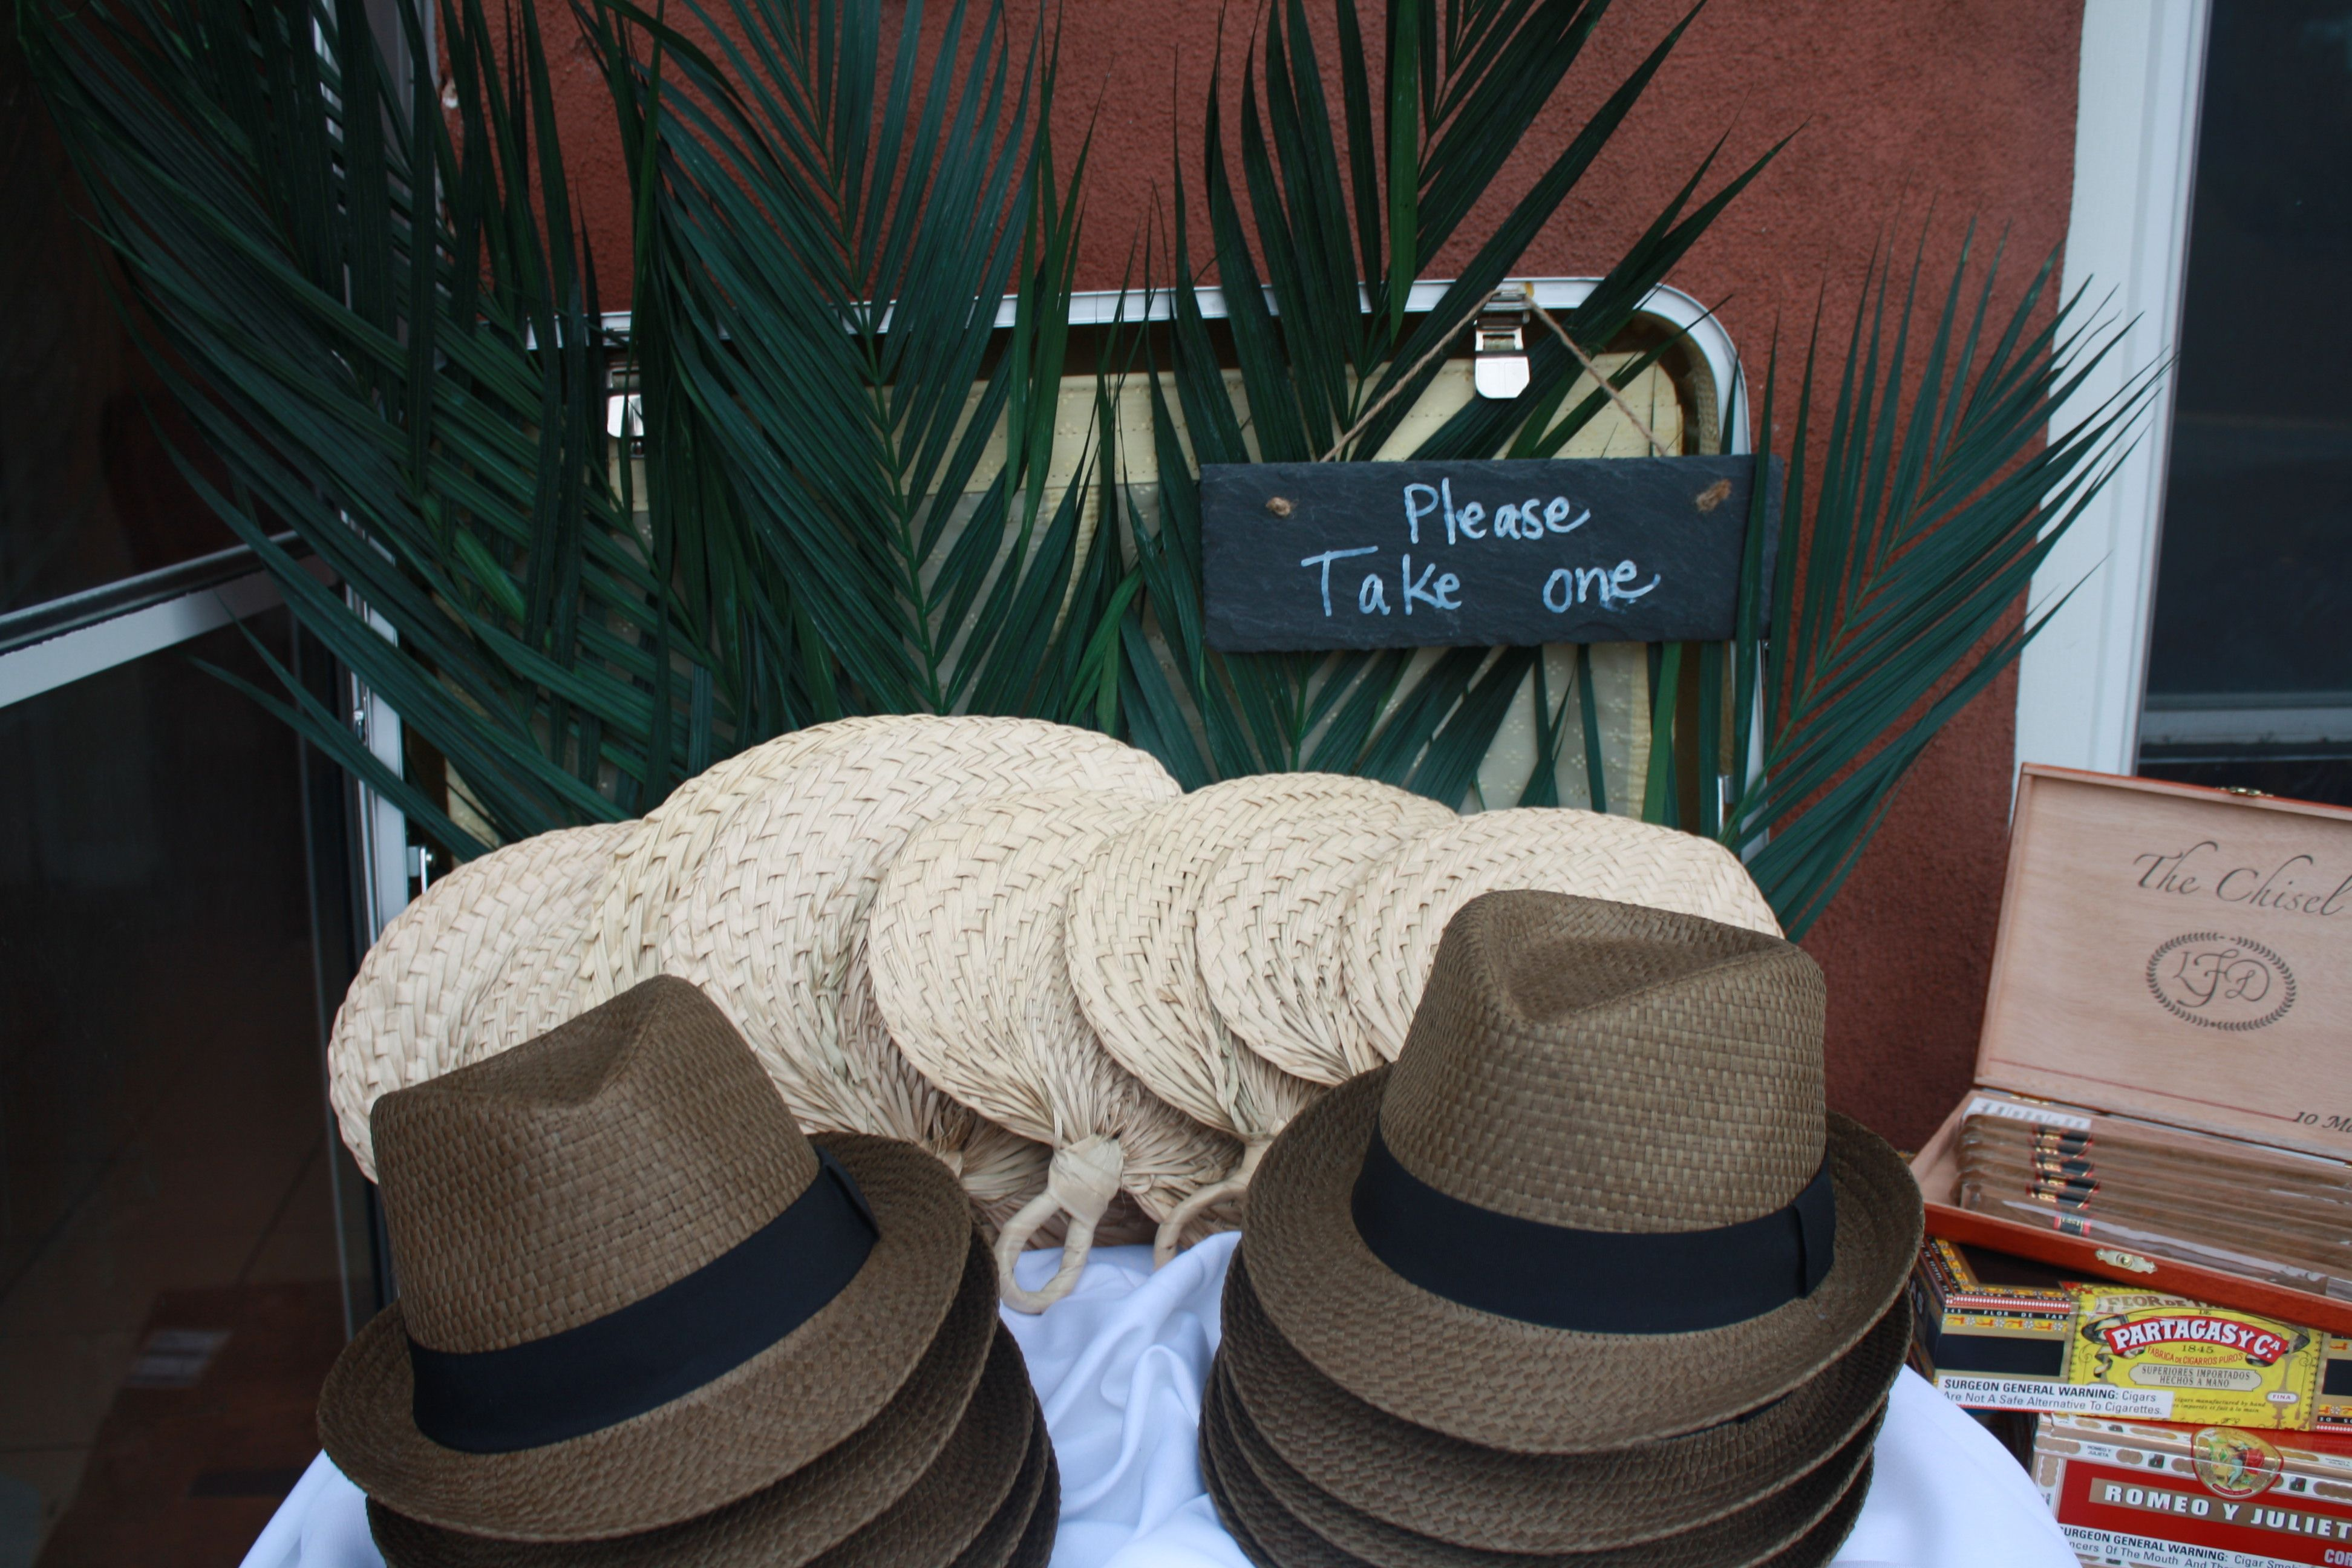 In Style Party Favors: Party Favors Cuban Style Hats For Men And Fans For Women